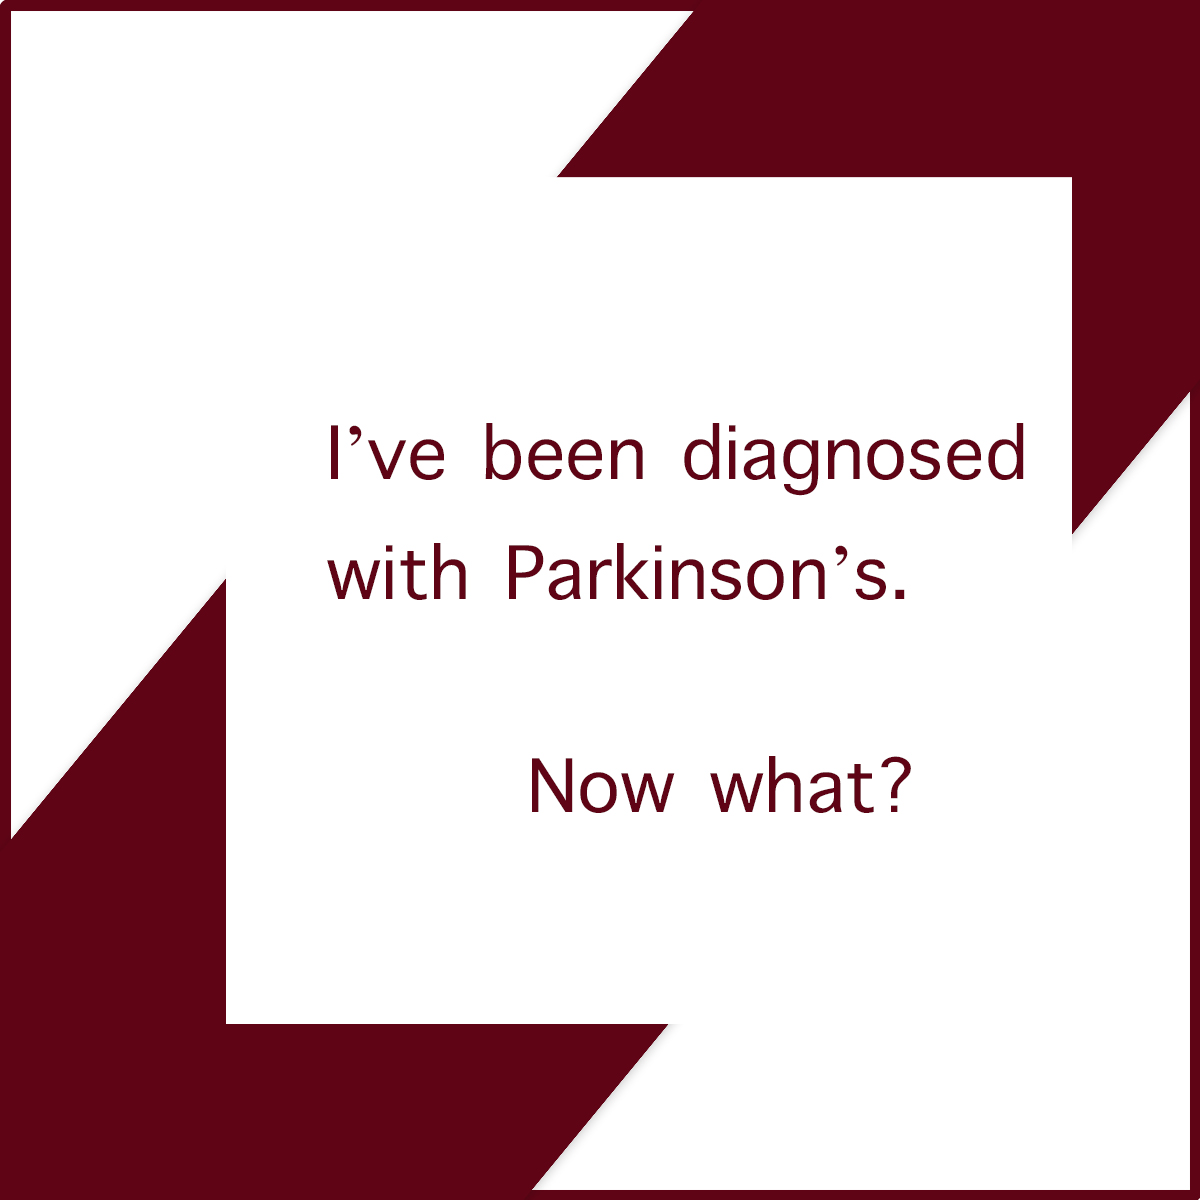 Parkinsons diagnosis